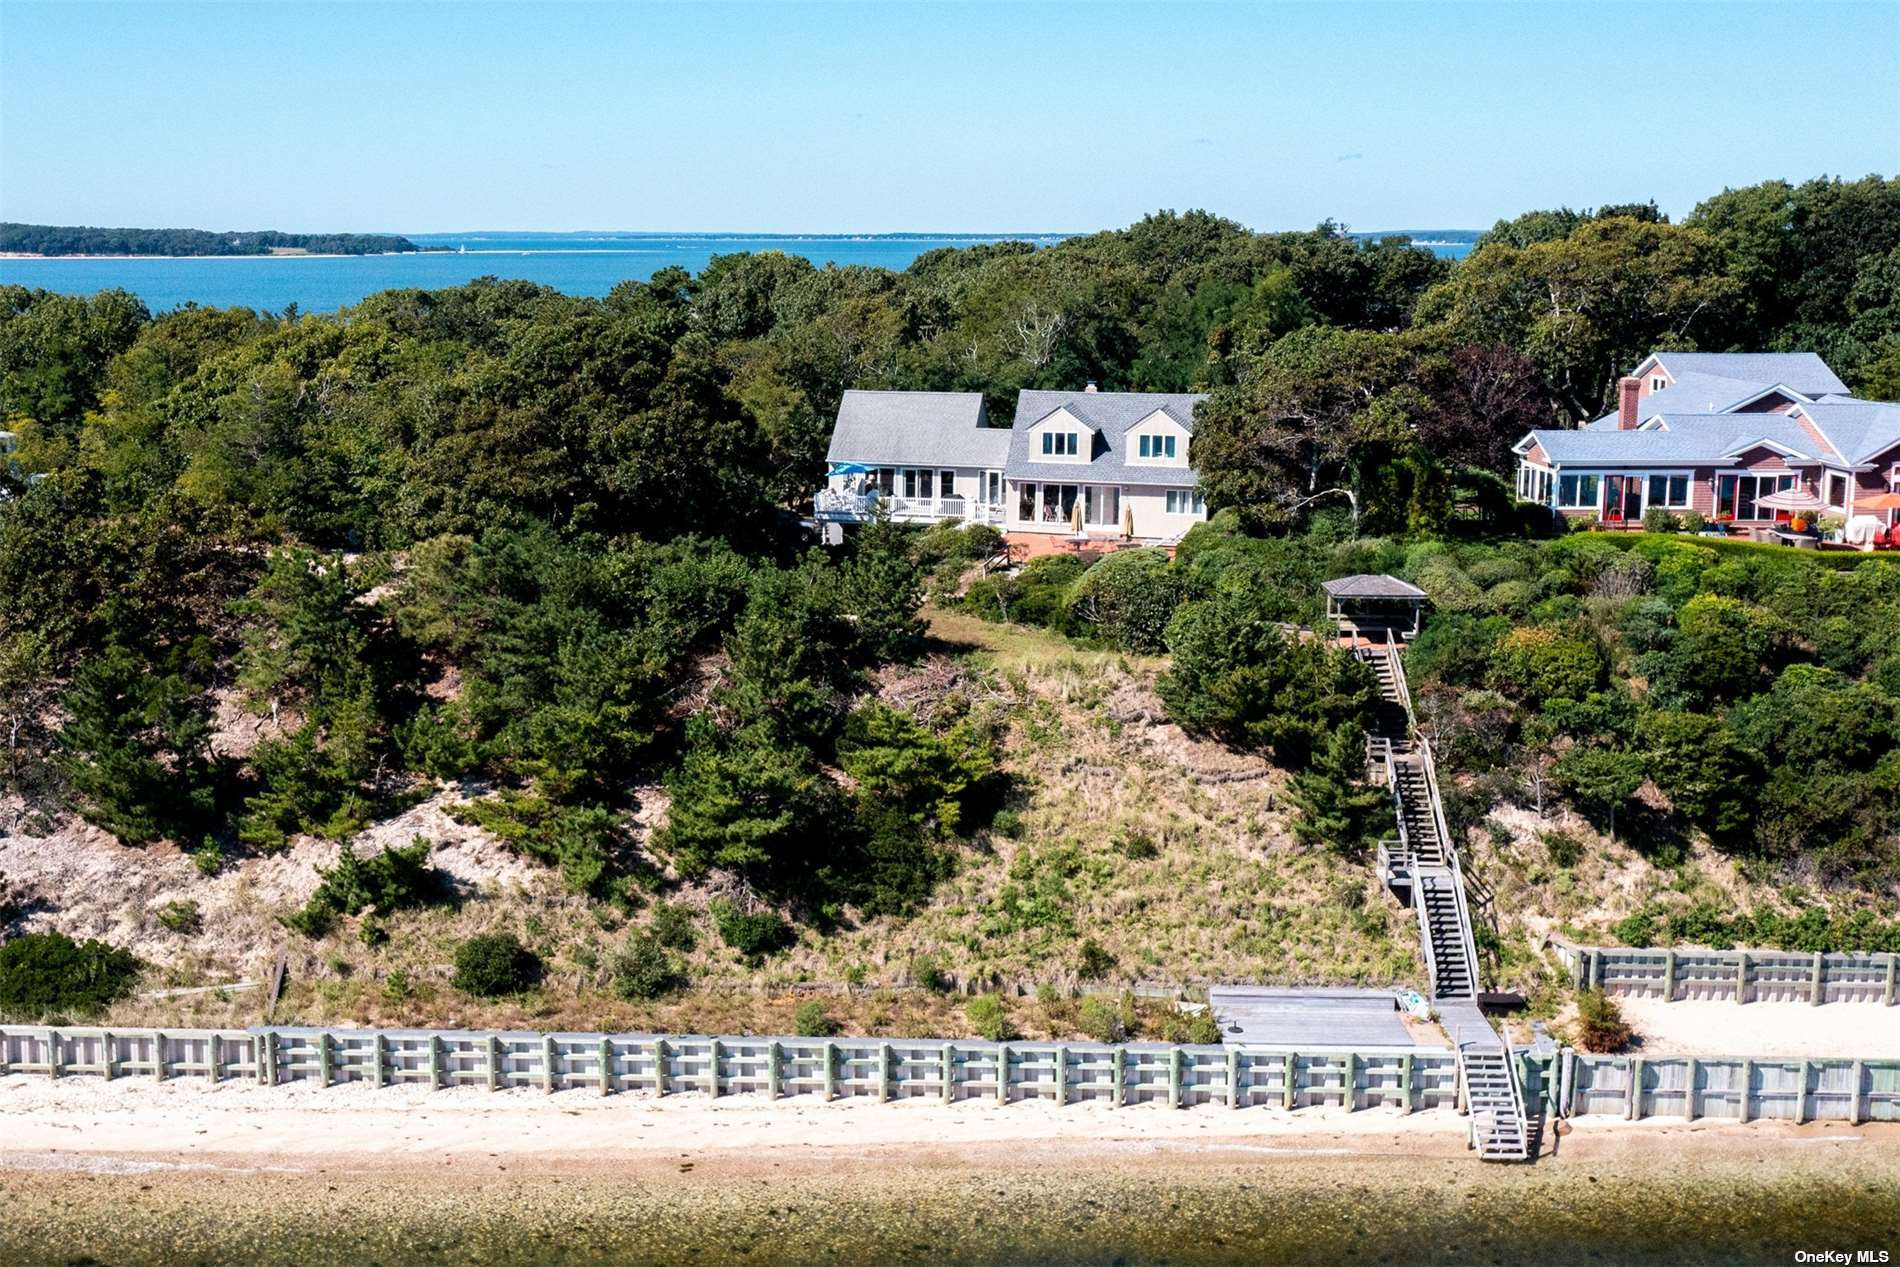 Sunrise and Sunsets. At the end of the Nassau Point Penninsula high up in the trees surrounded by water sit this lovely private beach house with forever views across Little Peconic Bay to Southhampton and Jessups neck. Big spacious open floor plan, enclosed by a wall of sliders to acccess the brick patio, seaside gazebo, 140' of new bulkheading with a sun platform, revegetated bluff, and a beautiful sandy beach.